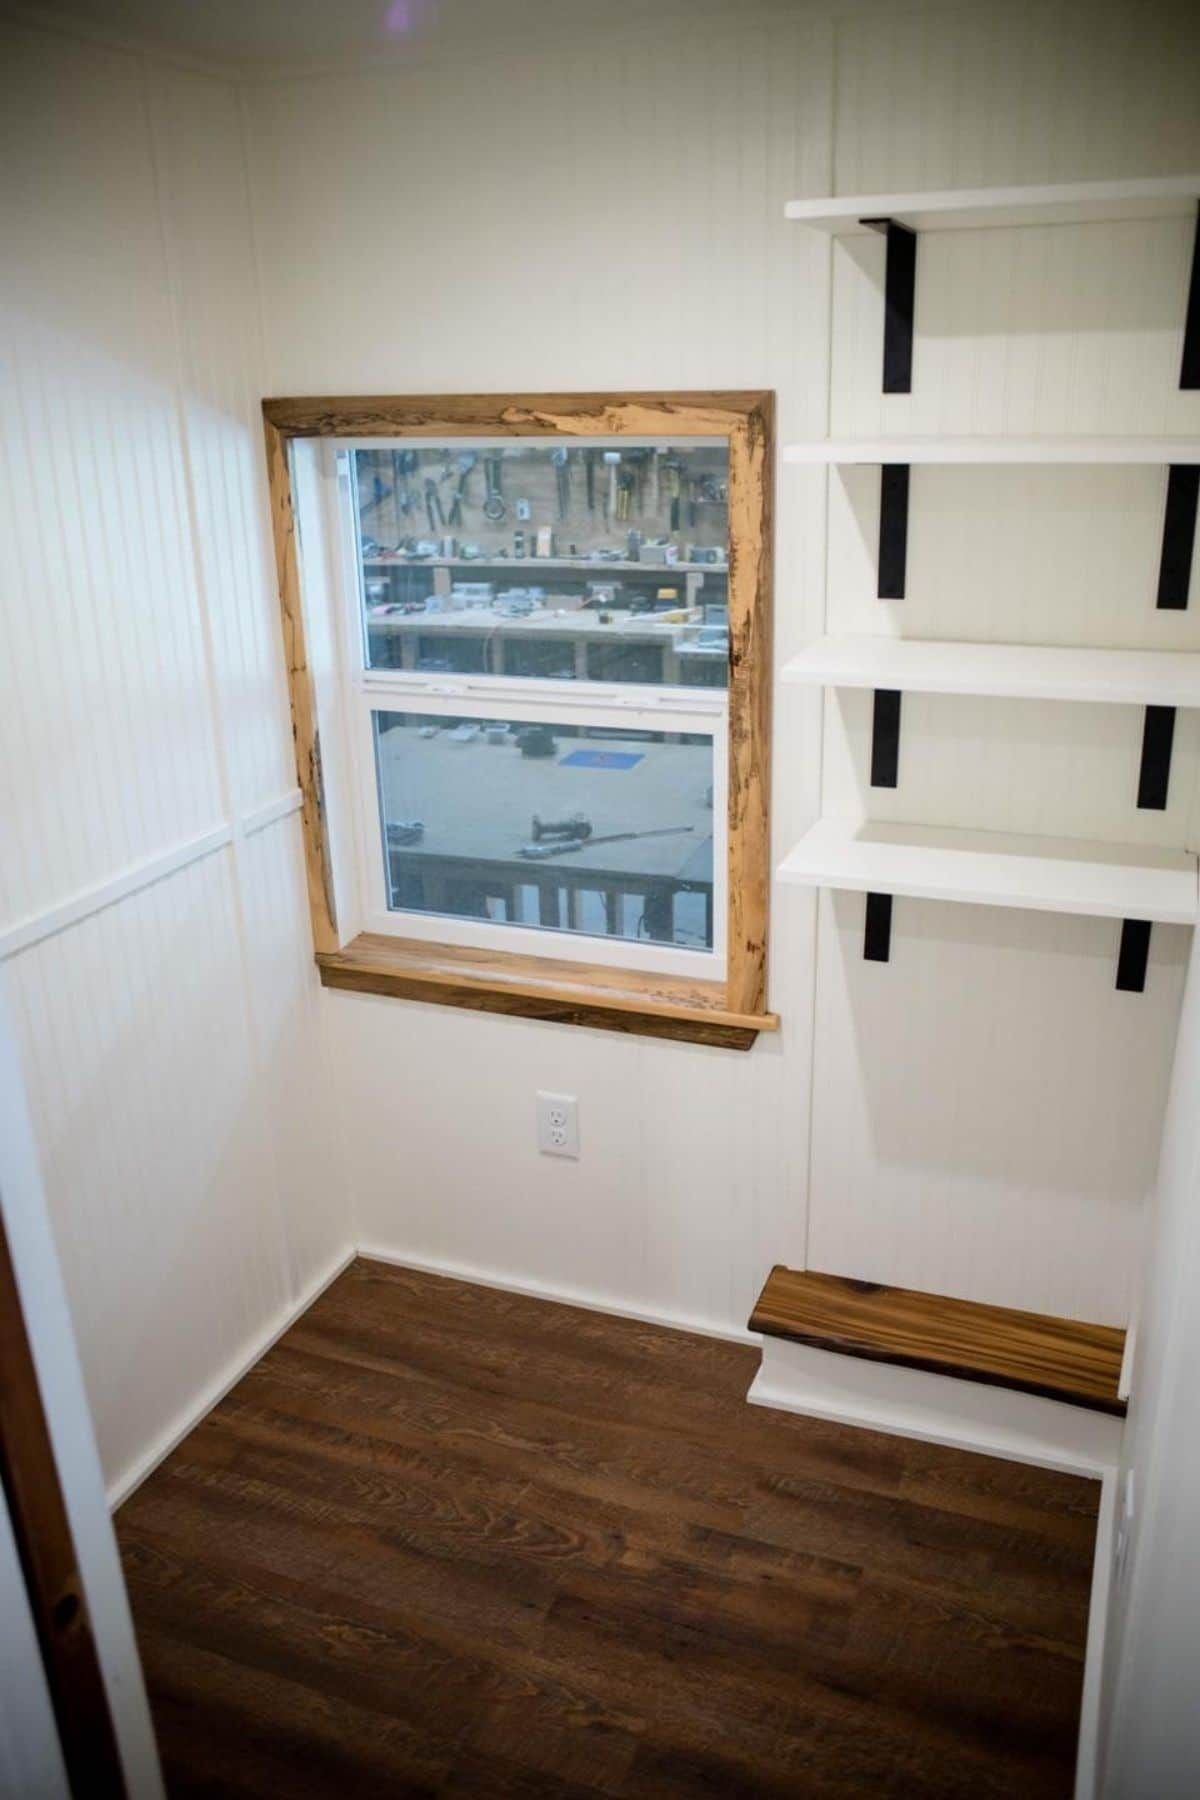 bedroom with shelves on wall and wood trimmed window